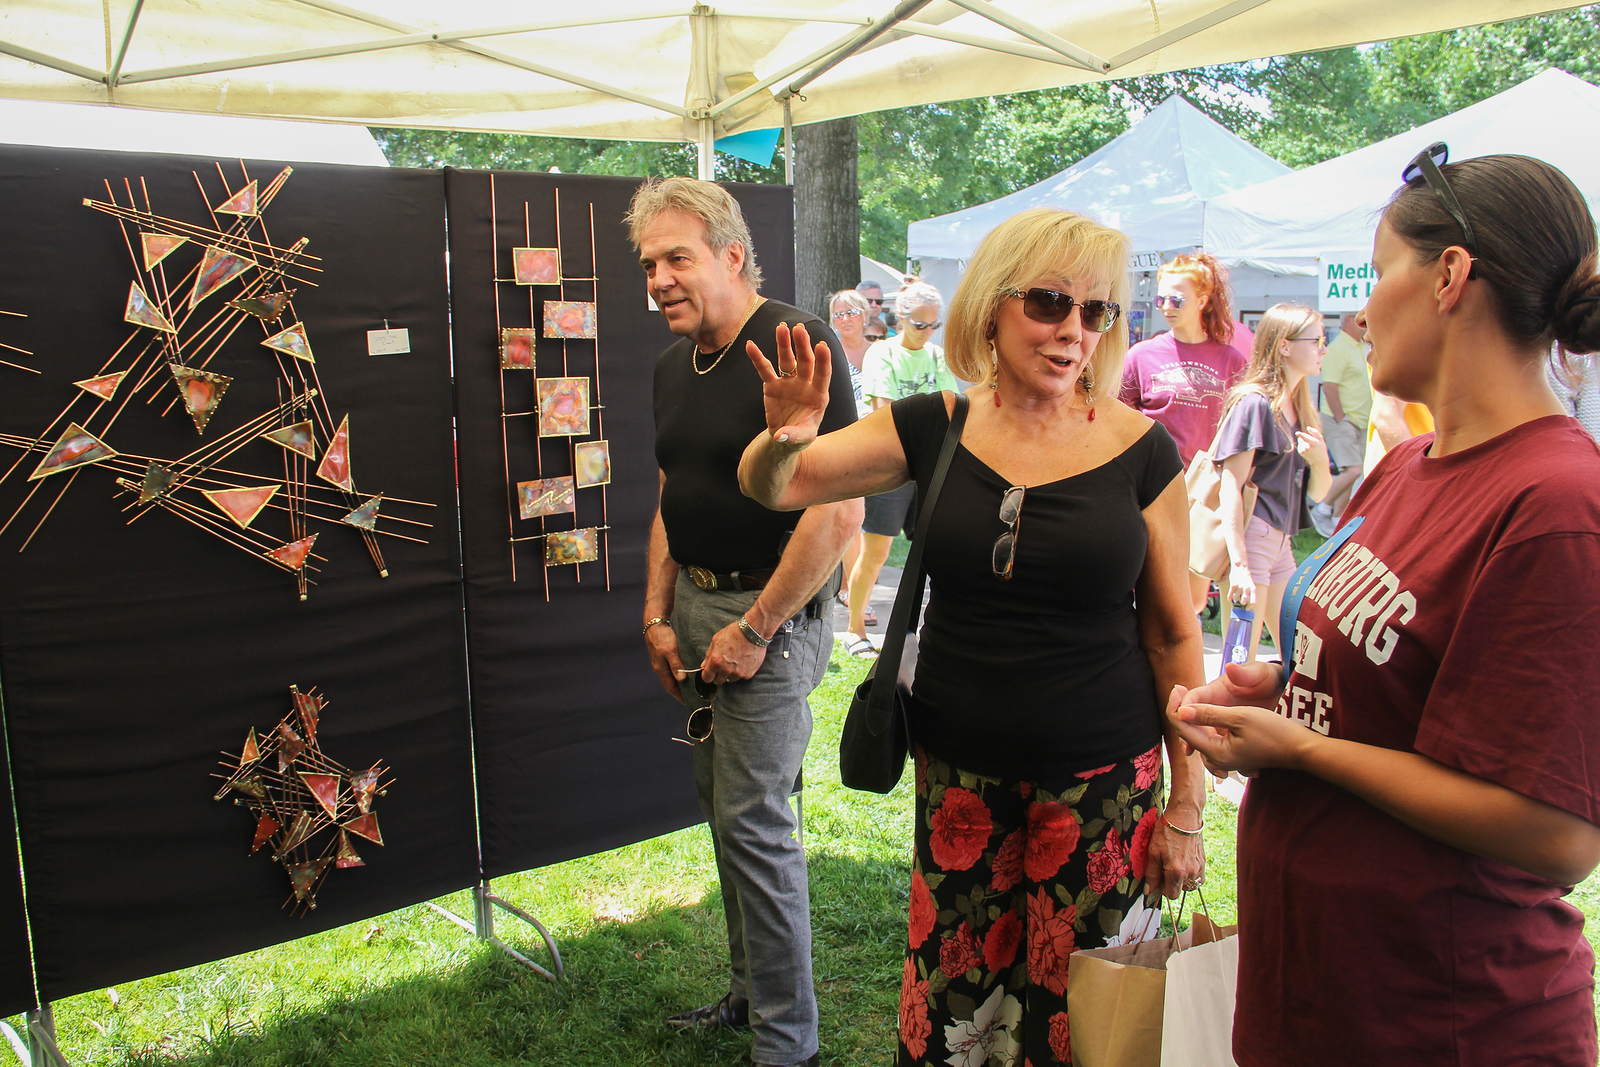 ALEC SMITH / GAZETTE Mark Overholt with his wife Sherry Overholt from Medina talk with Alicia Poff (right) on Sunday during the Art in the Park festival on Public Square in Medina. Poff is from Poff Sculptures in Columbus.